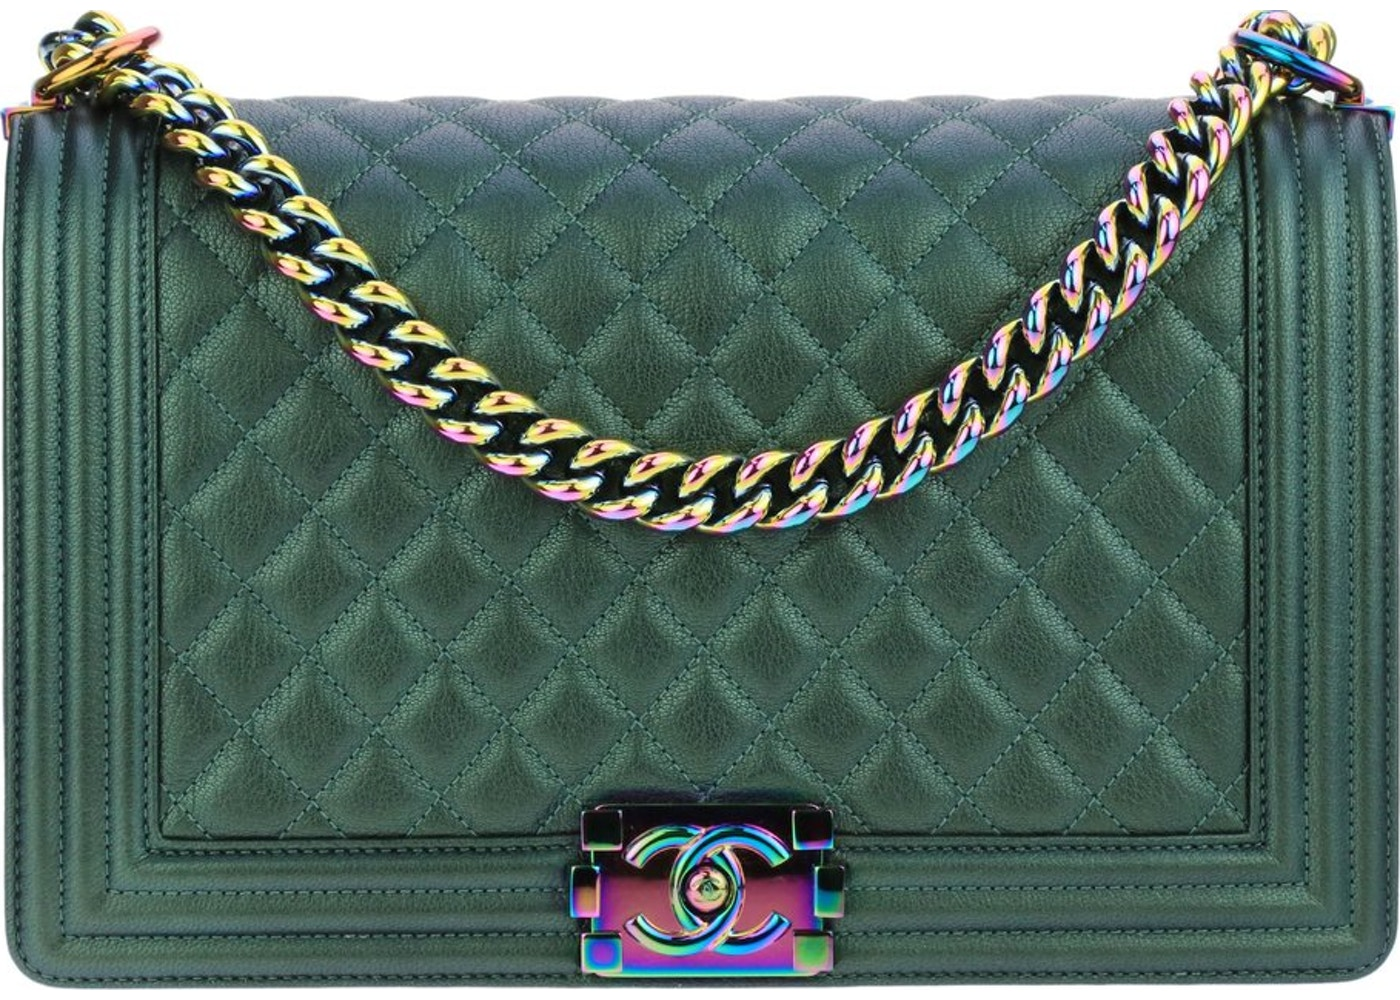 85c195cffbda5d Chanel Mermaid Boy Bag Calfskin Leather Medium Iridescent Green